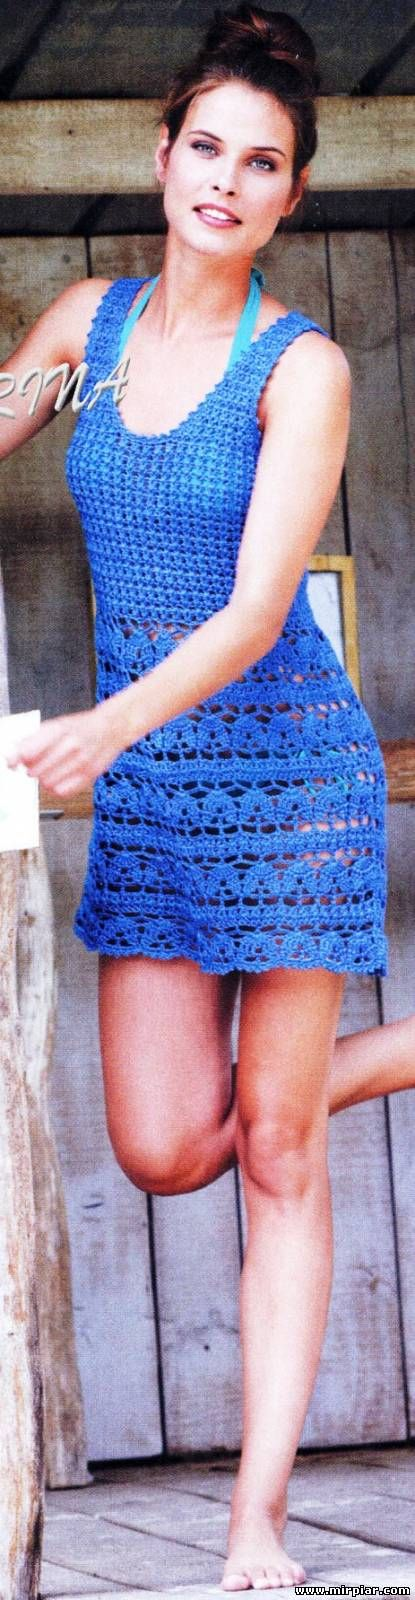 Blue dress with diagrams